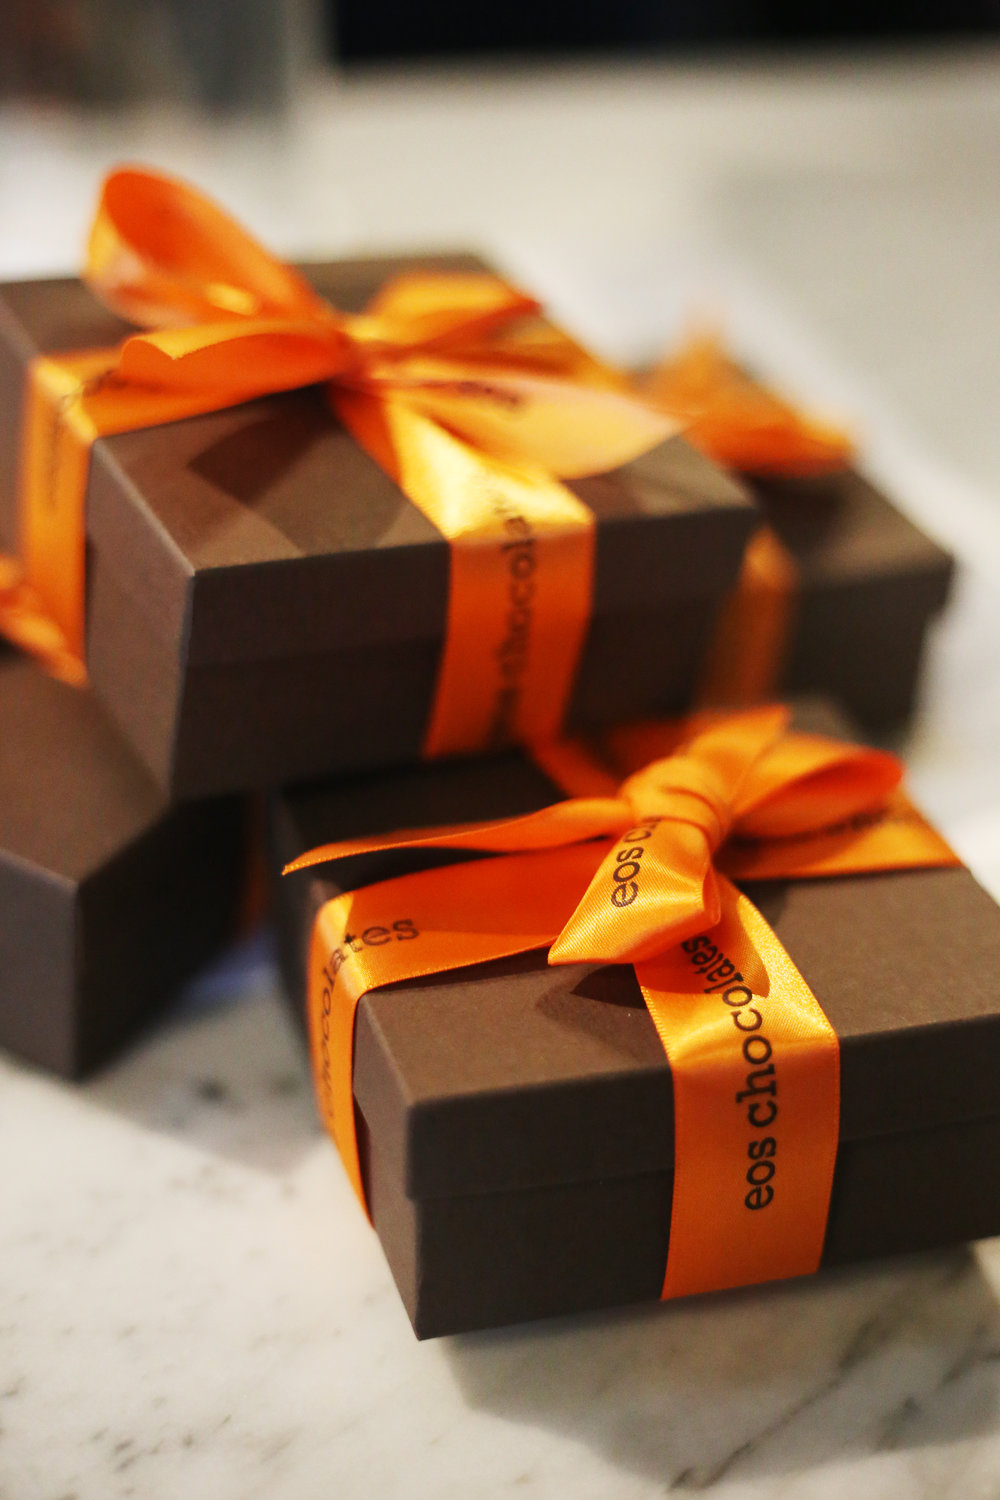 Packaged chocolates.JPG